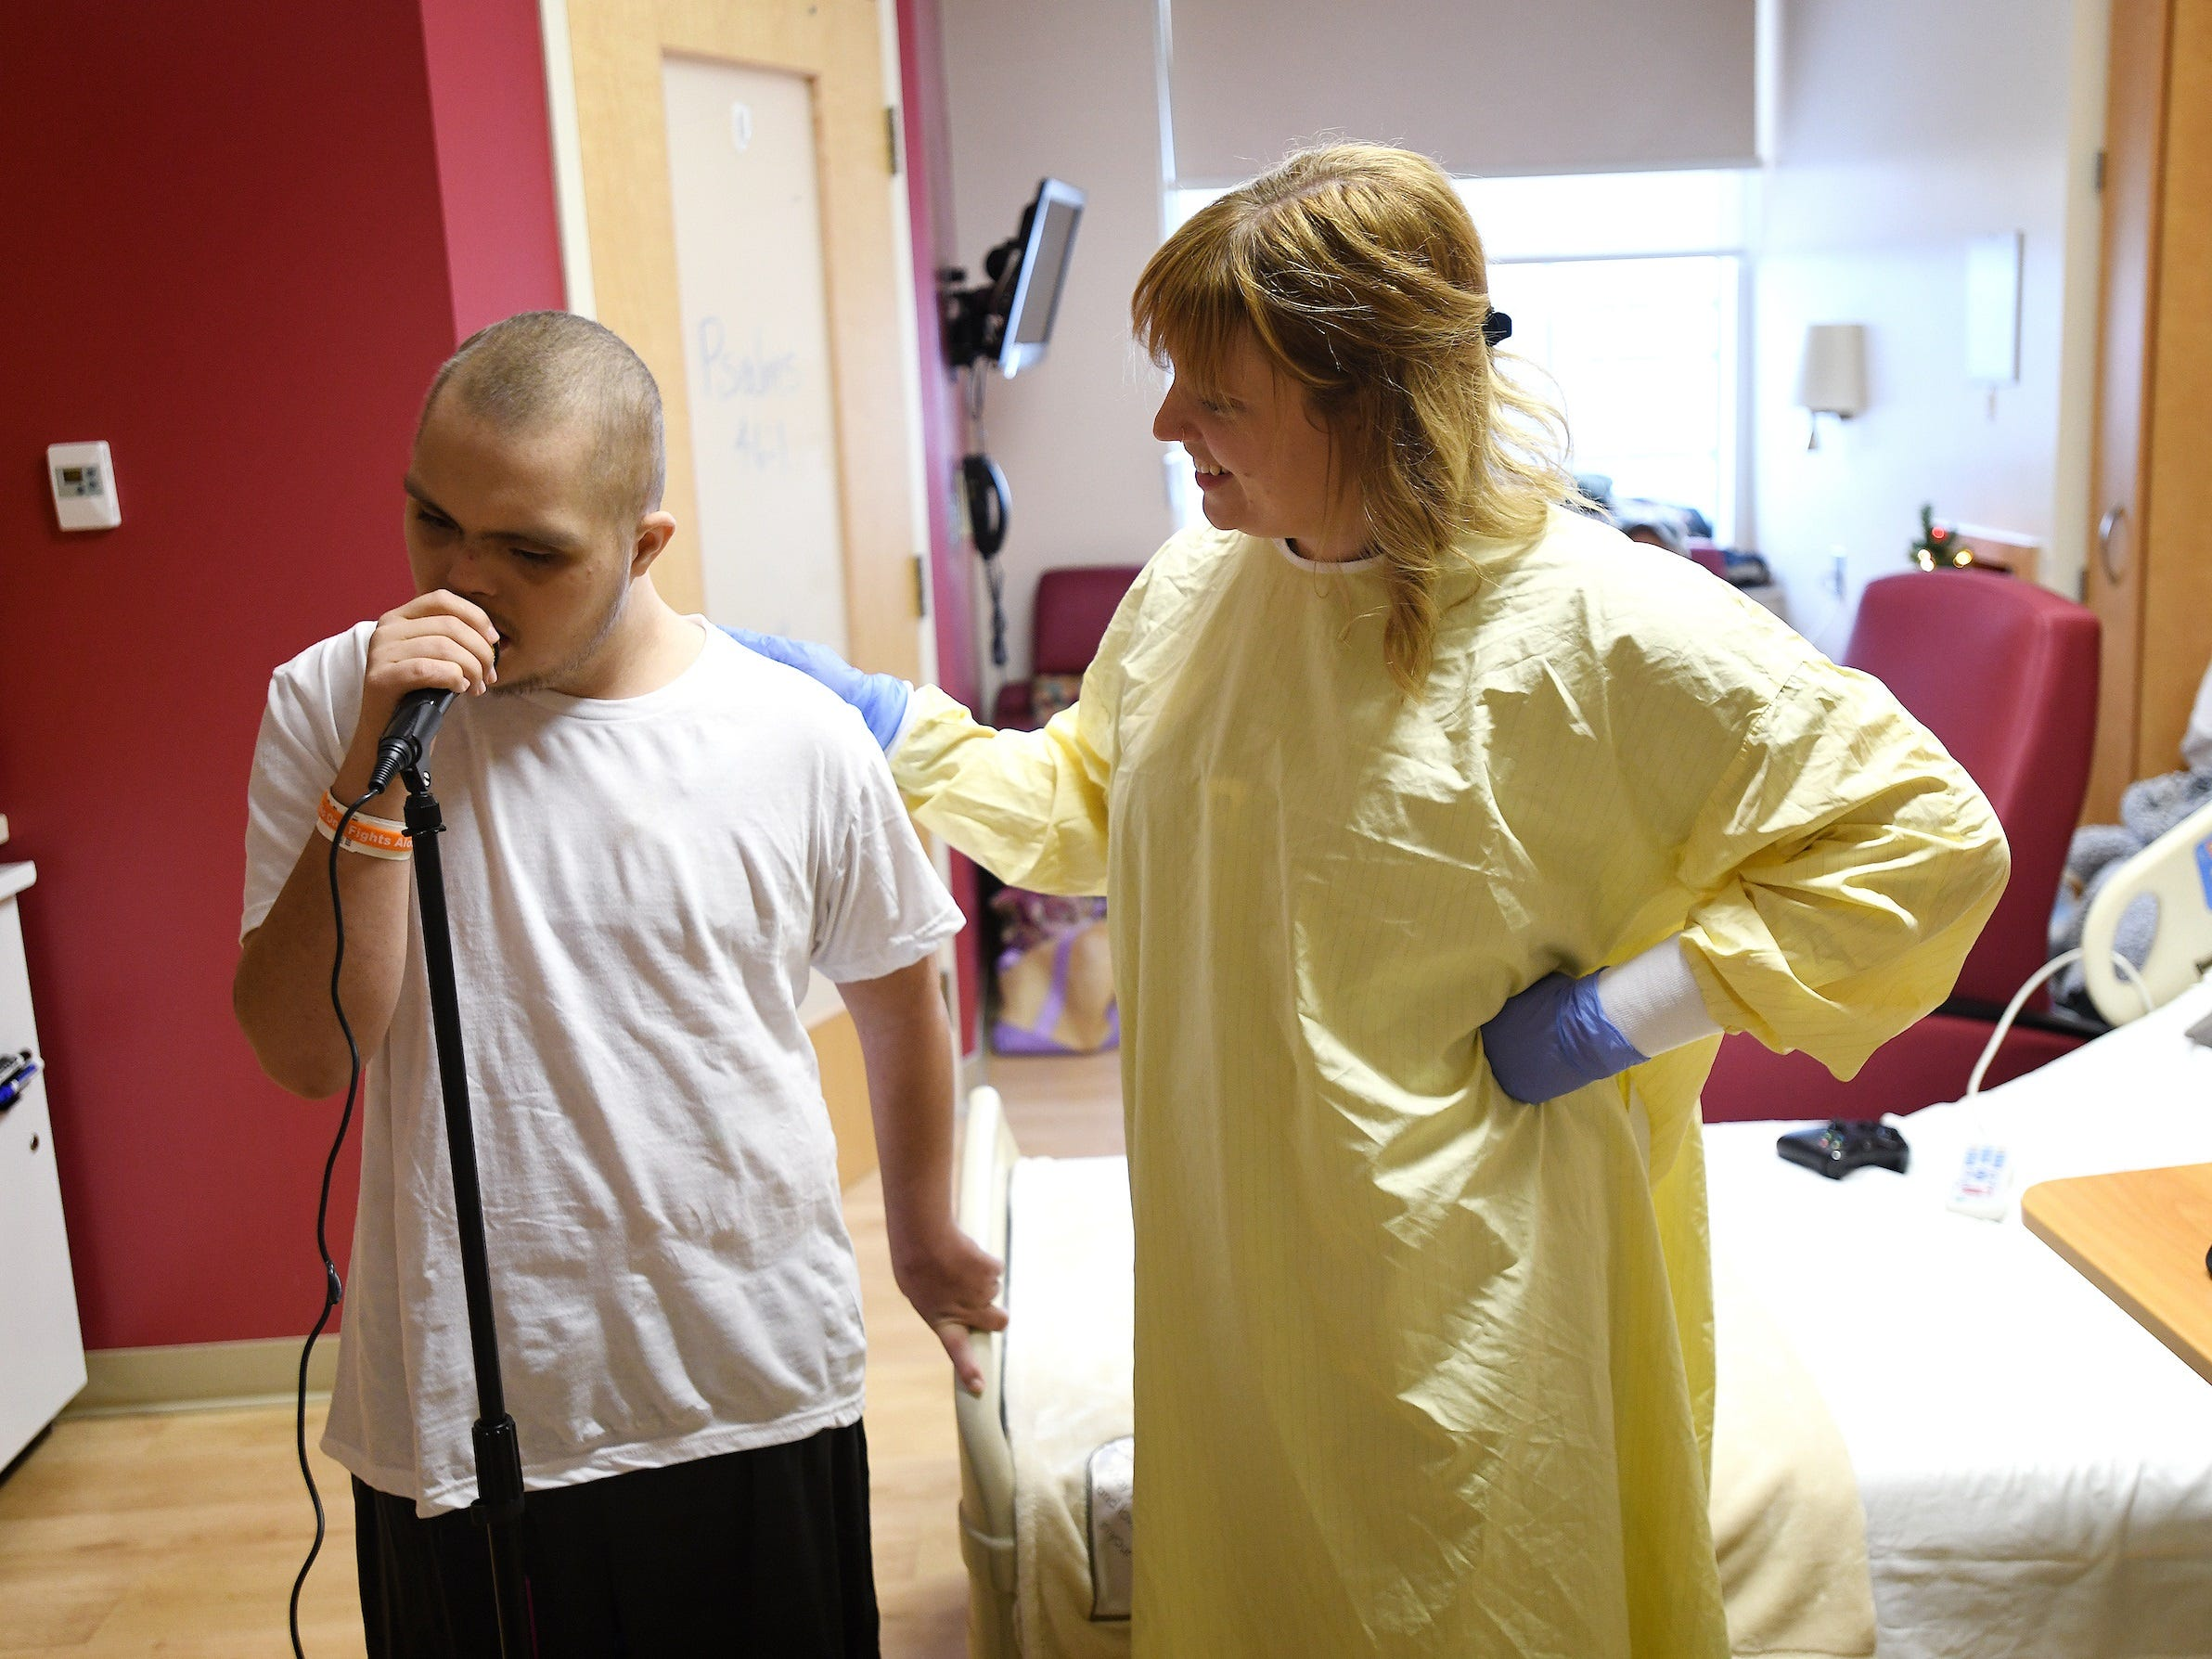 Music therapist Caitlin Krater works with Jalen Brown at Riley Hospital for Children at IU Health, where he is being treated for leukemia.